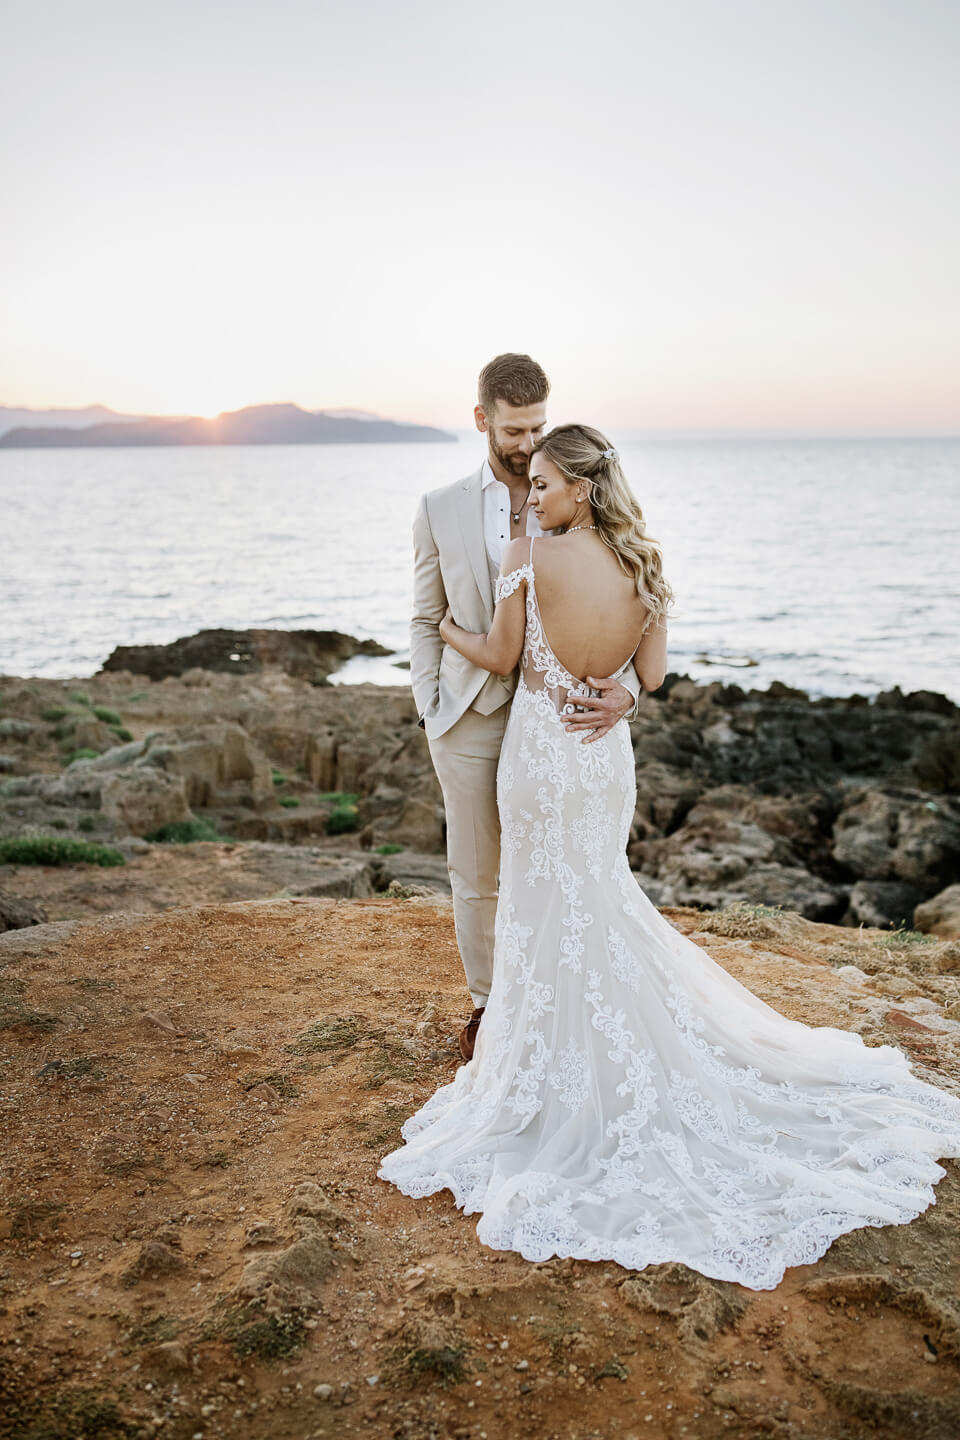 Irini Koronaki Photography Anna Johnny wedding in Greece Crete